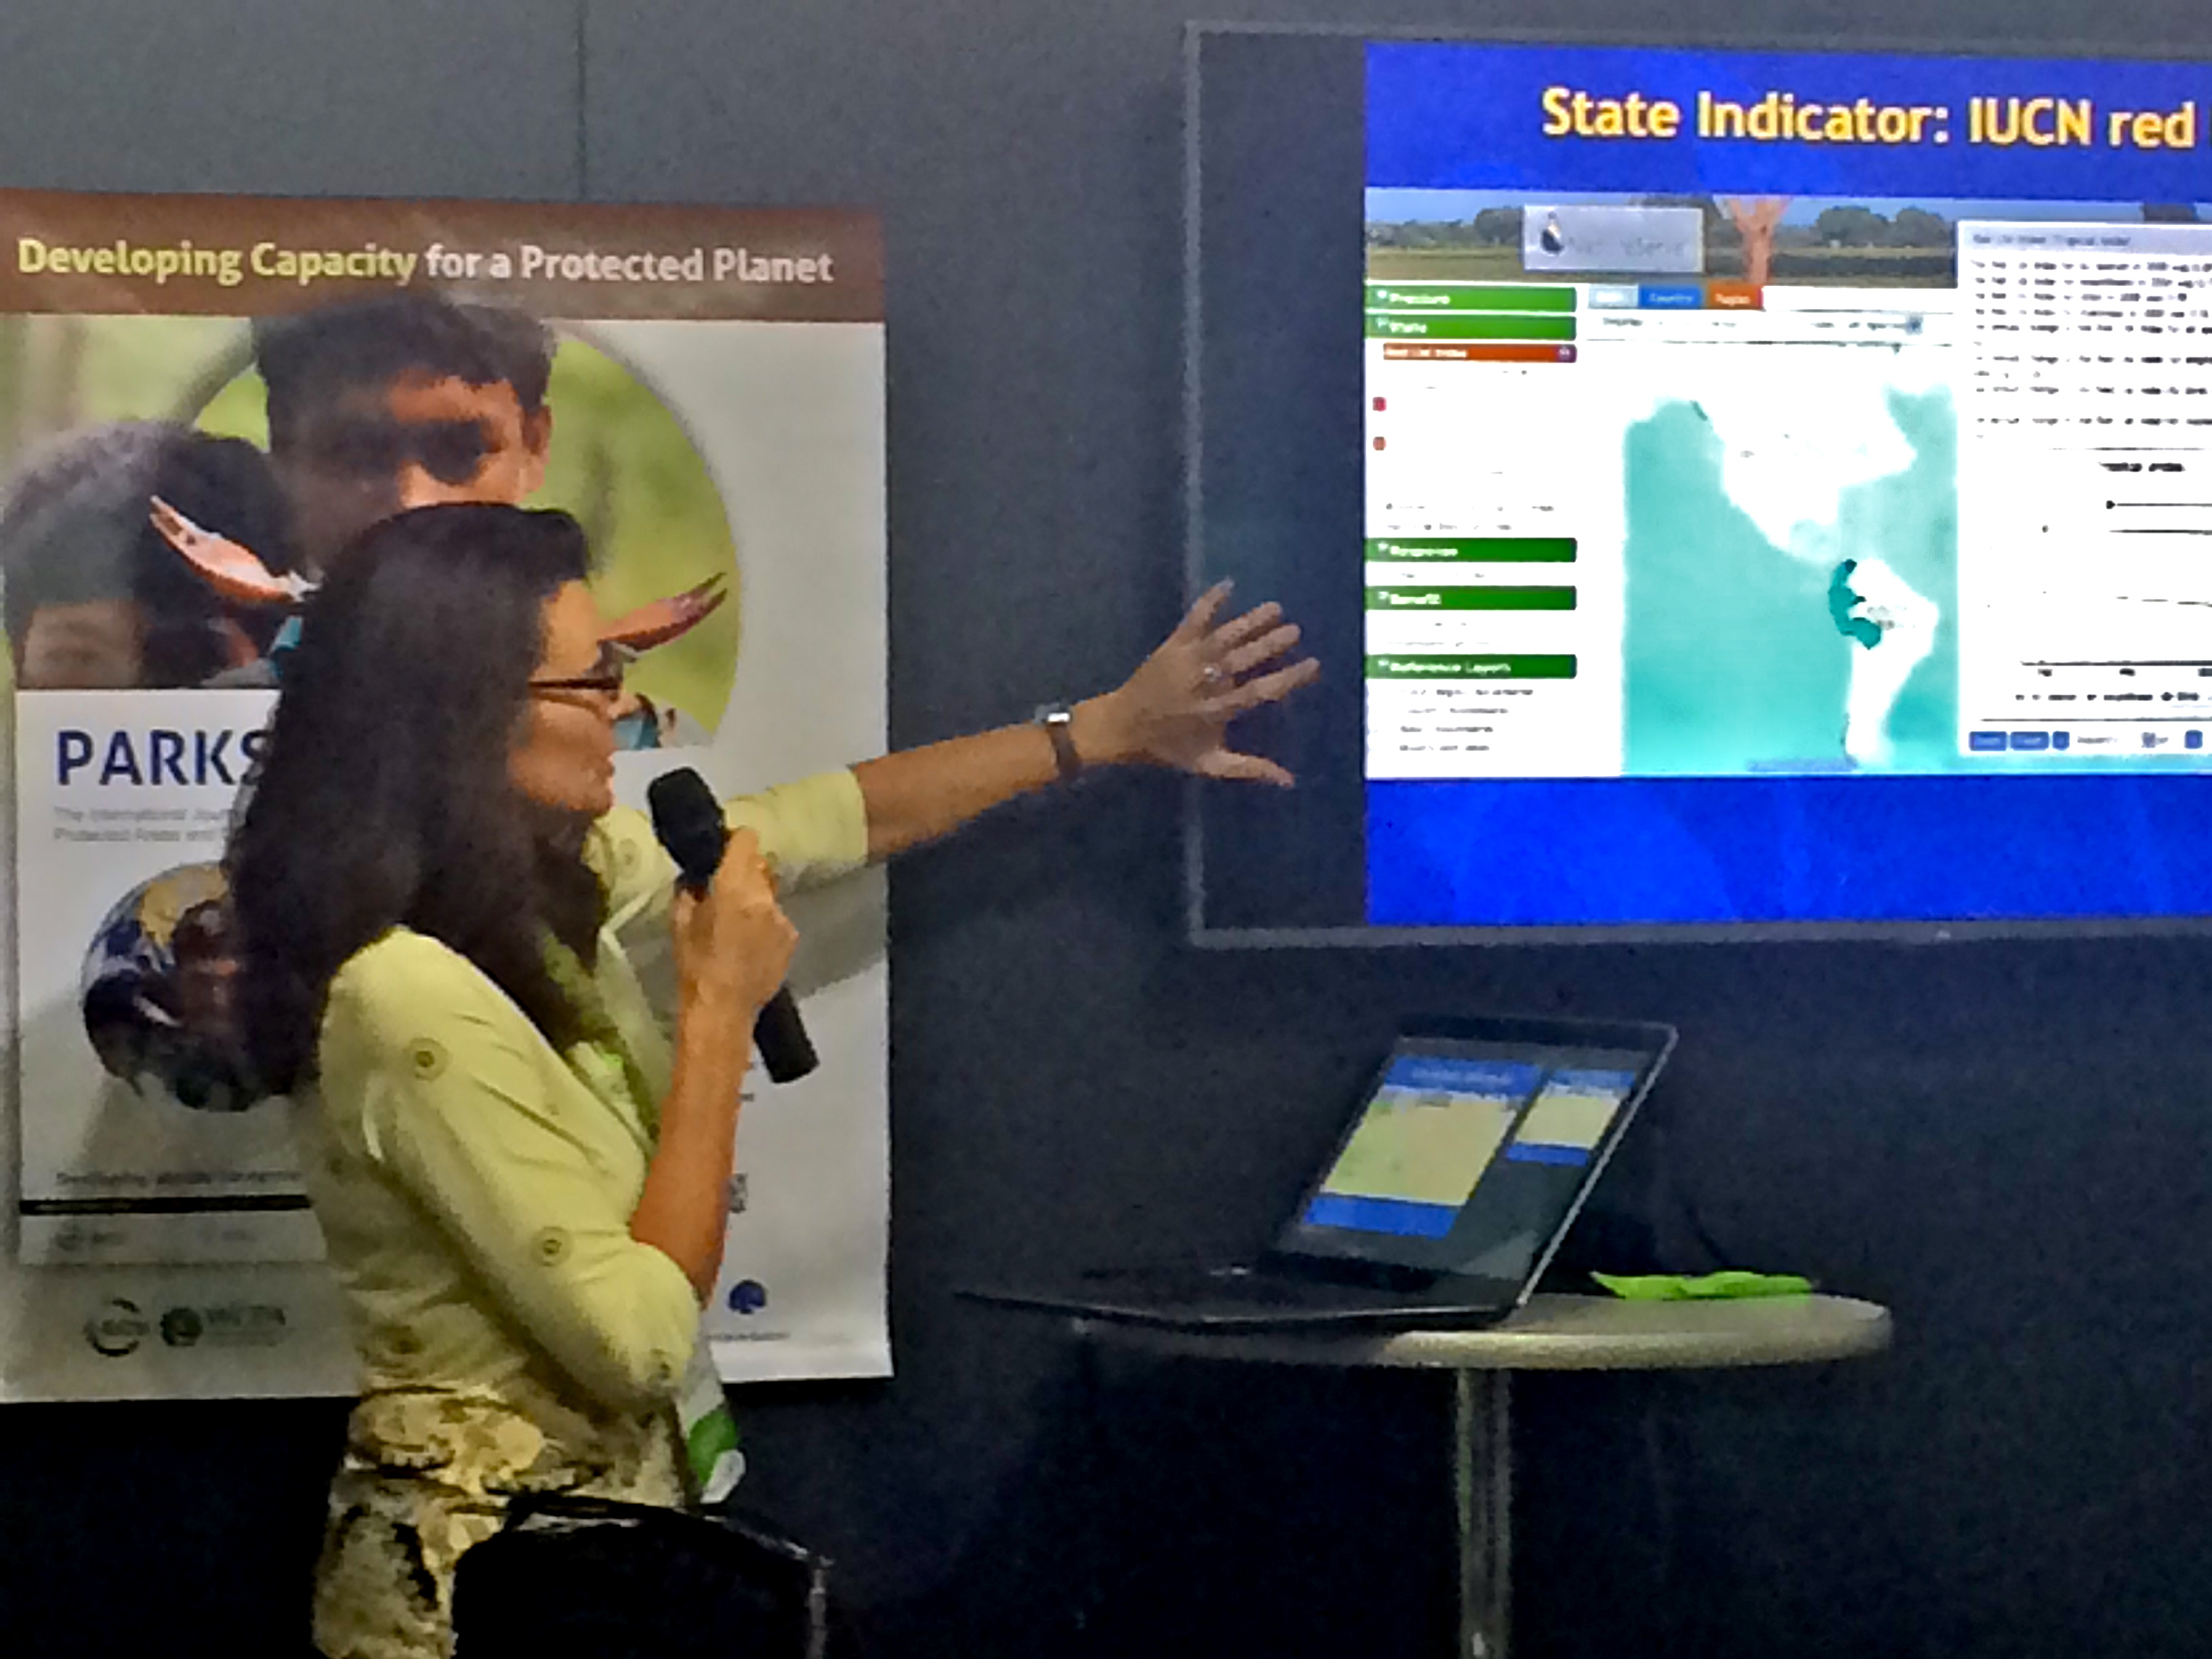 Chief Scientist Healy Hamilton unveiled NatureServe's new Biodiversity Indicators Dashboard last month at the World Parks Congress in Sydney.